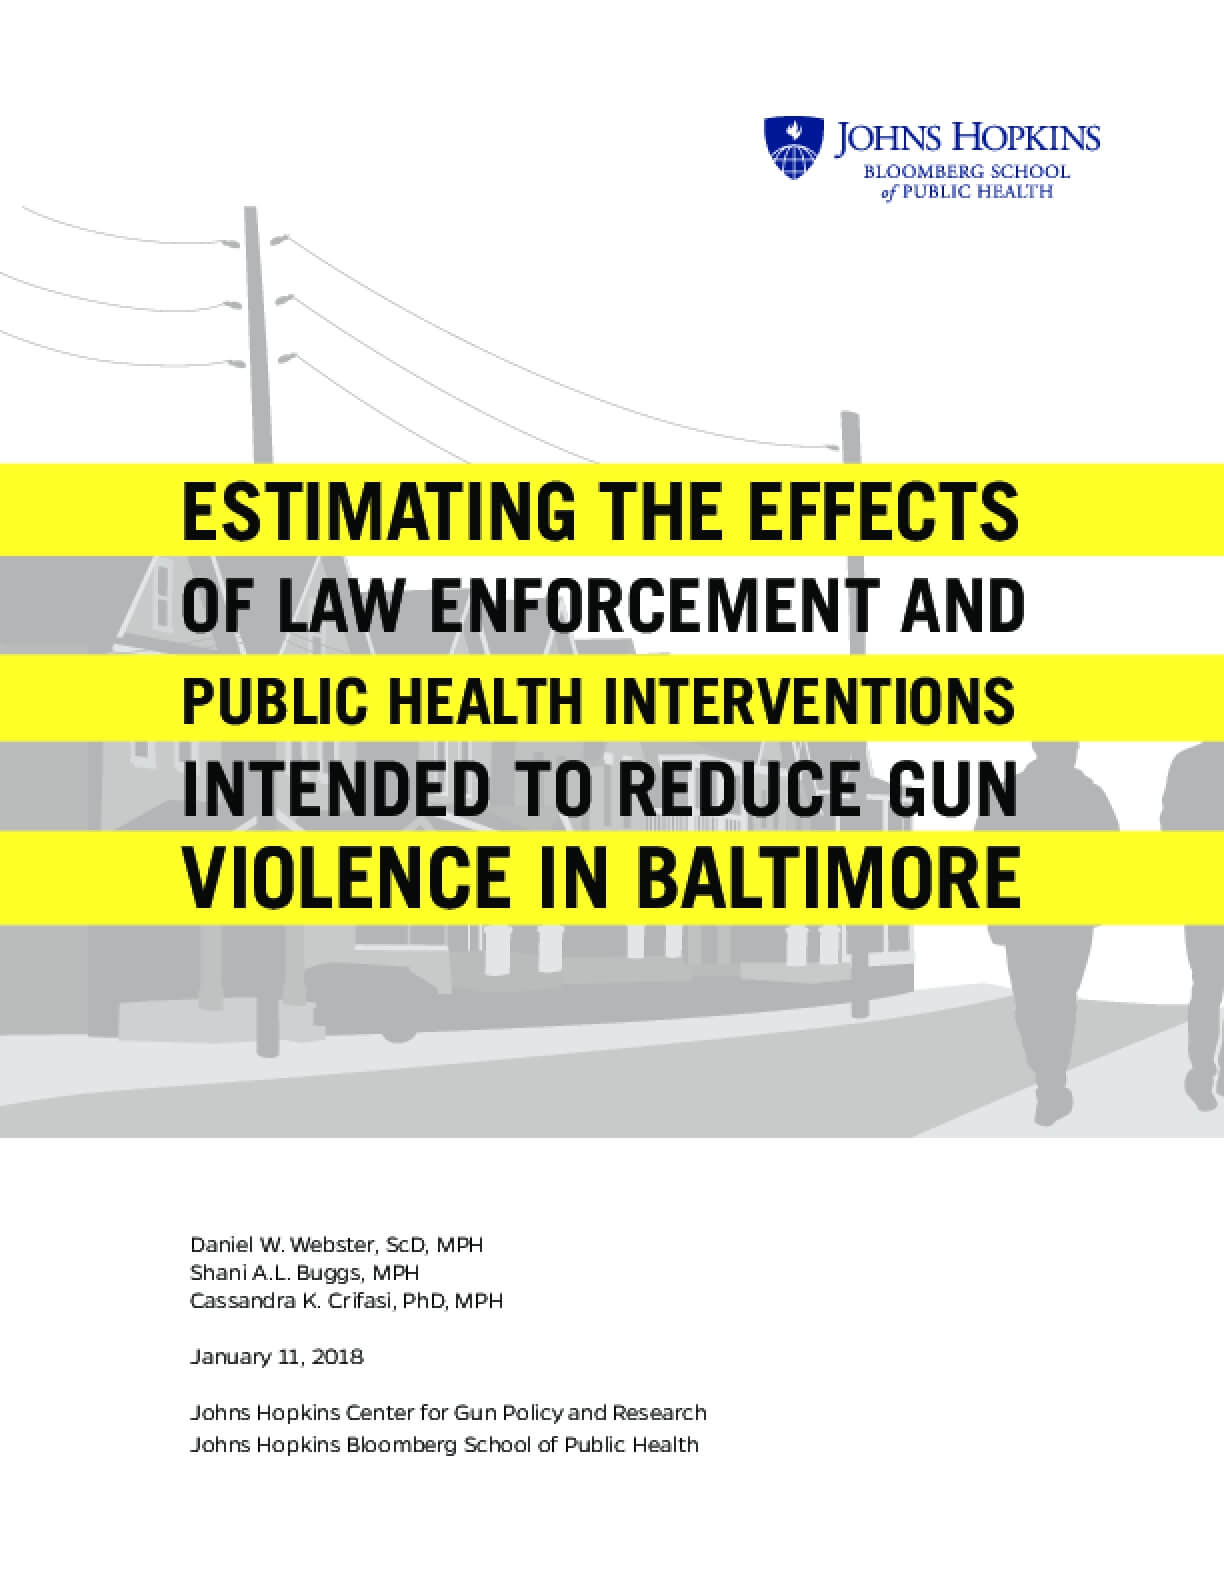 Estimating the Effects of Law Enforcement and Public Health Interventions Intended to Reduce Gun Violence in Baltimore